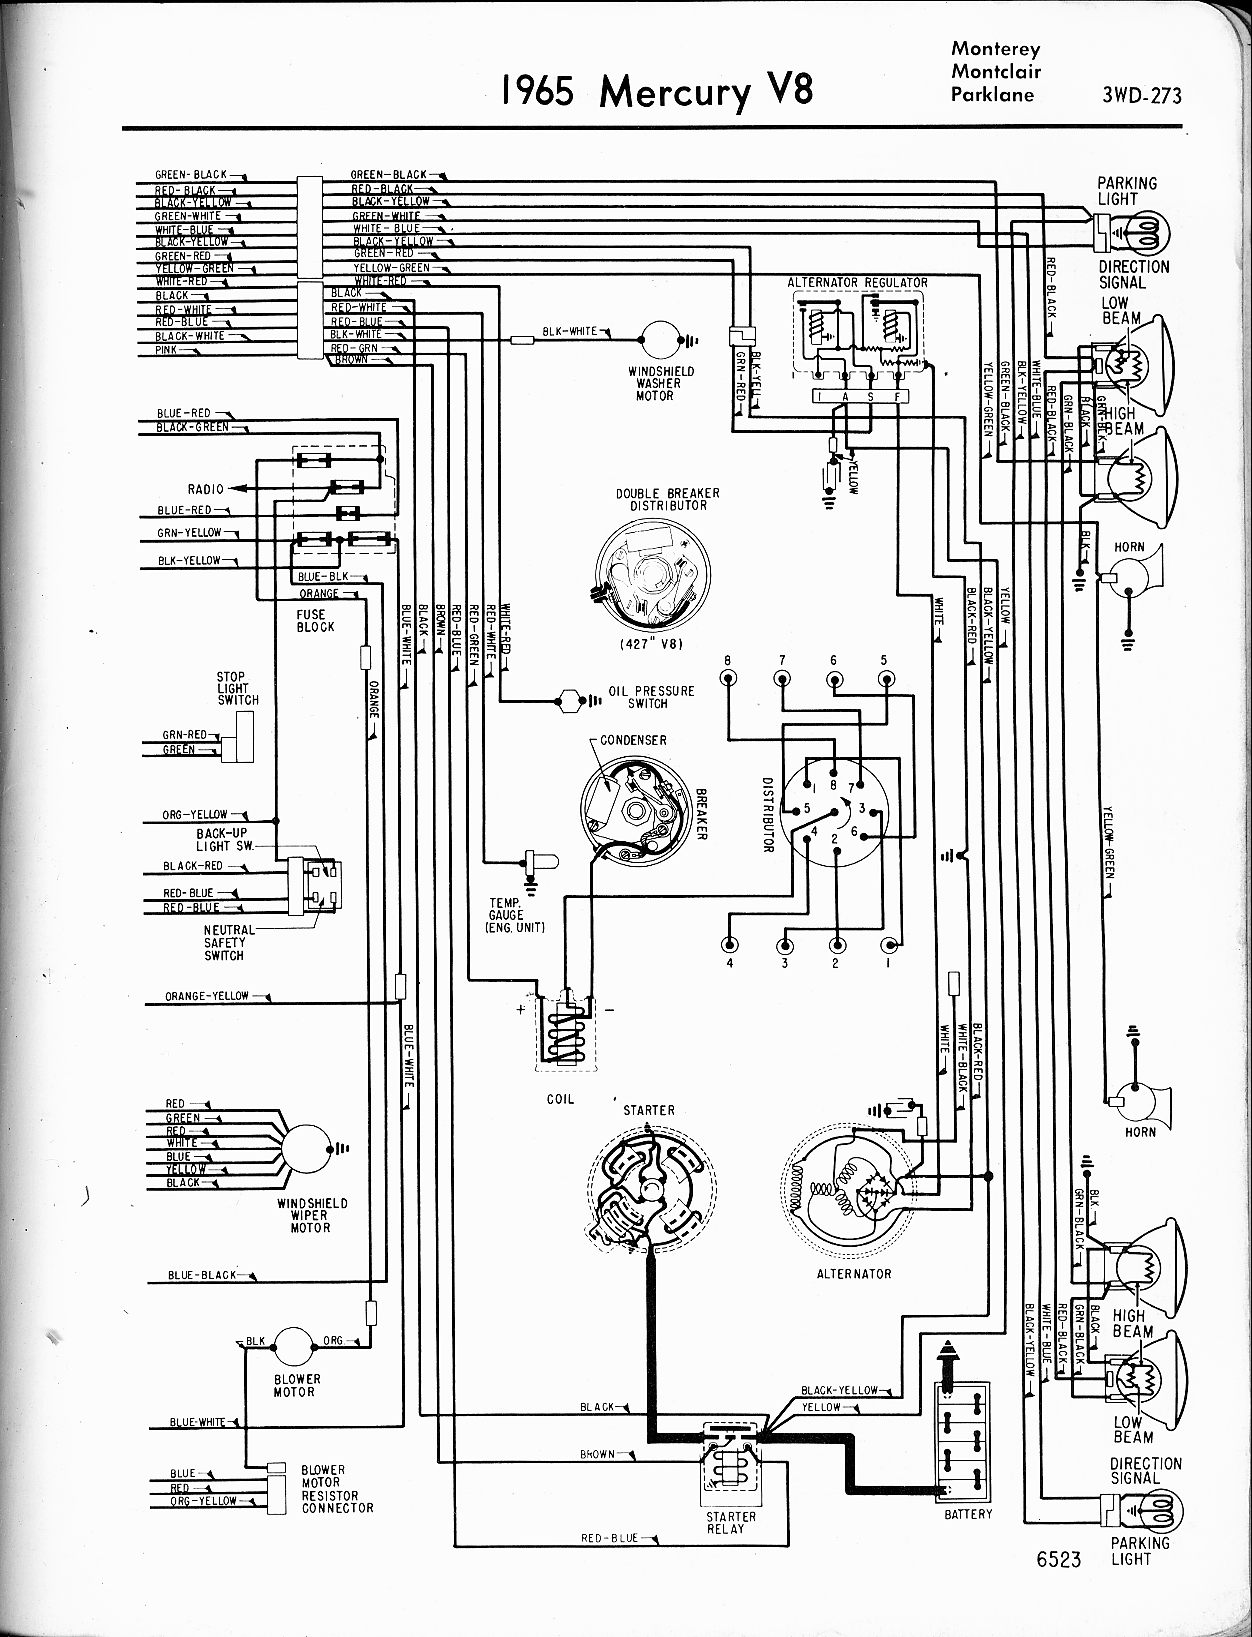 1965 F100 Wiring Diagram Charging System Modern Design Of 1966 F 100 Coil Mercury Diagrams The Old Car Manual Project Rh Oldcarmanualproject Com Dash Ford Truck